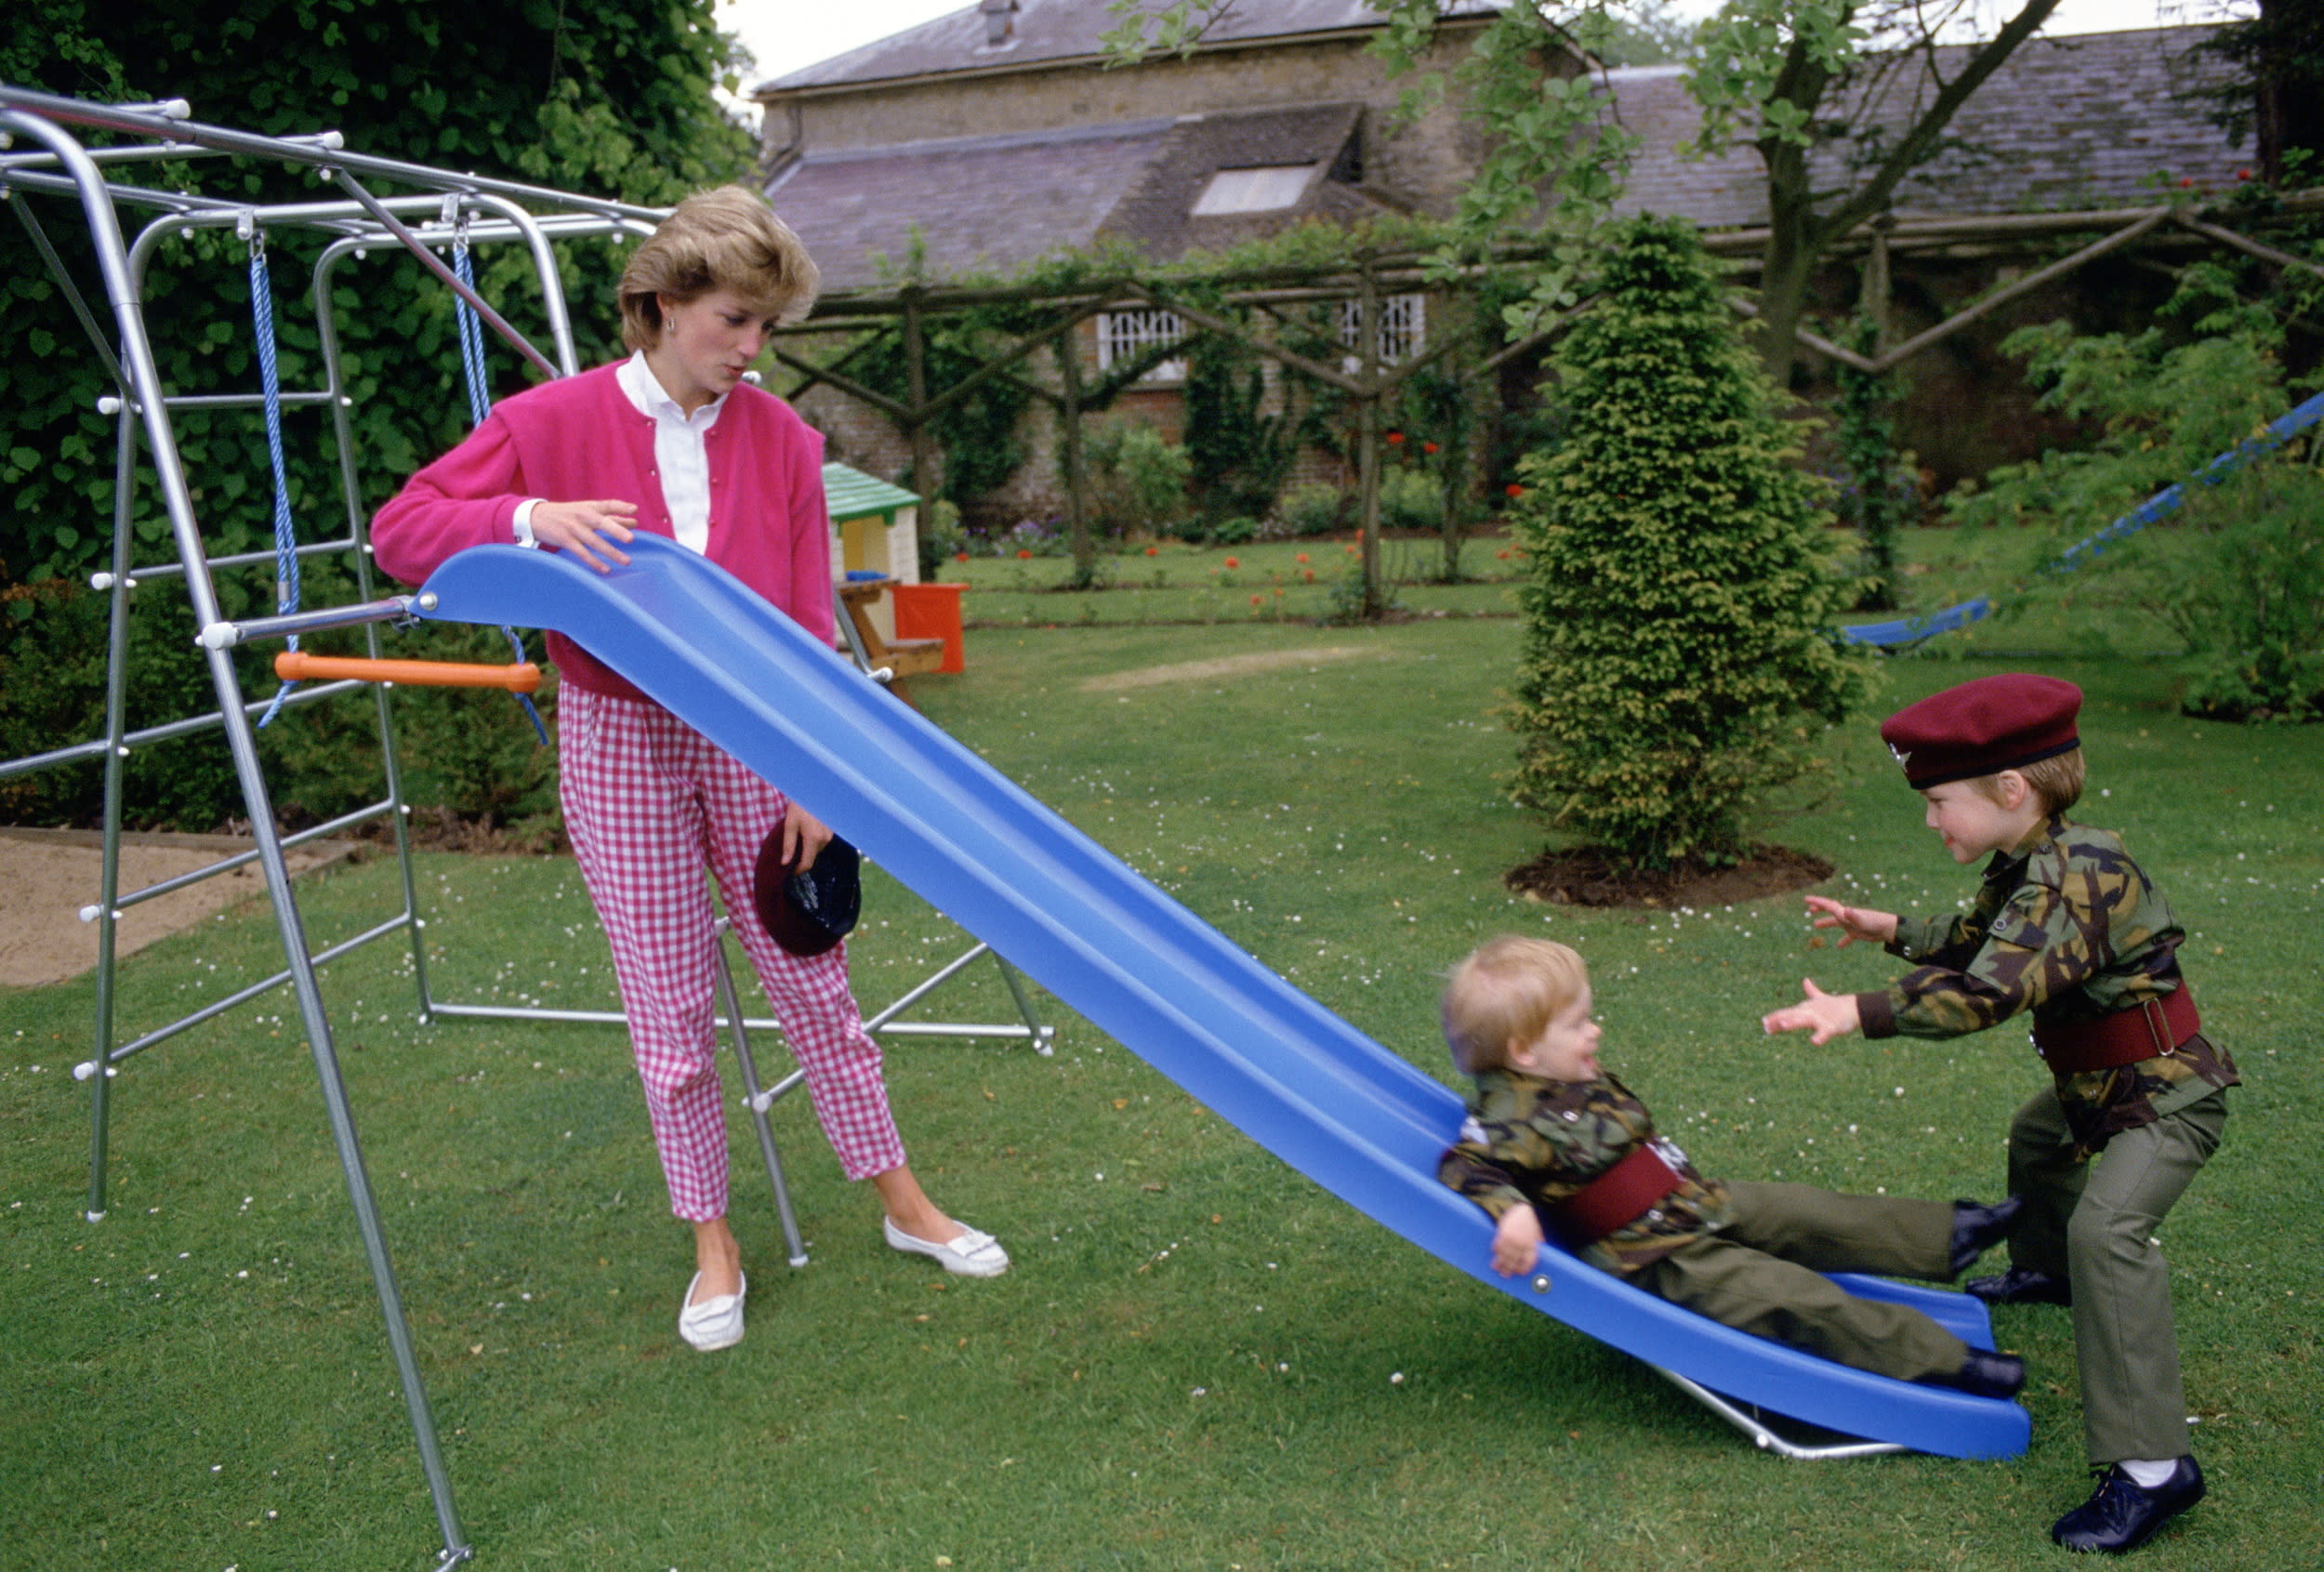 TETBURY, UNITED KINGDOM - JULY 18:  Princess Diana With Her Sons Prince William And Prince Harry Playing On A Slide In The Gardens Of Highgove House. The Boys Are Wearing The Uniforms Of The 1st Battalion Of The Parachute Regiment Of Which Their Father Is The Colonel-in-chief. Princess Diana Is Wearing A Gingham Style Pair Of Trousers.  (Photo by Tim Graham/Getty Images)